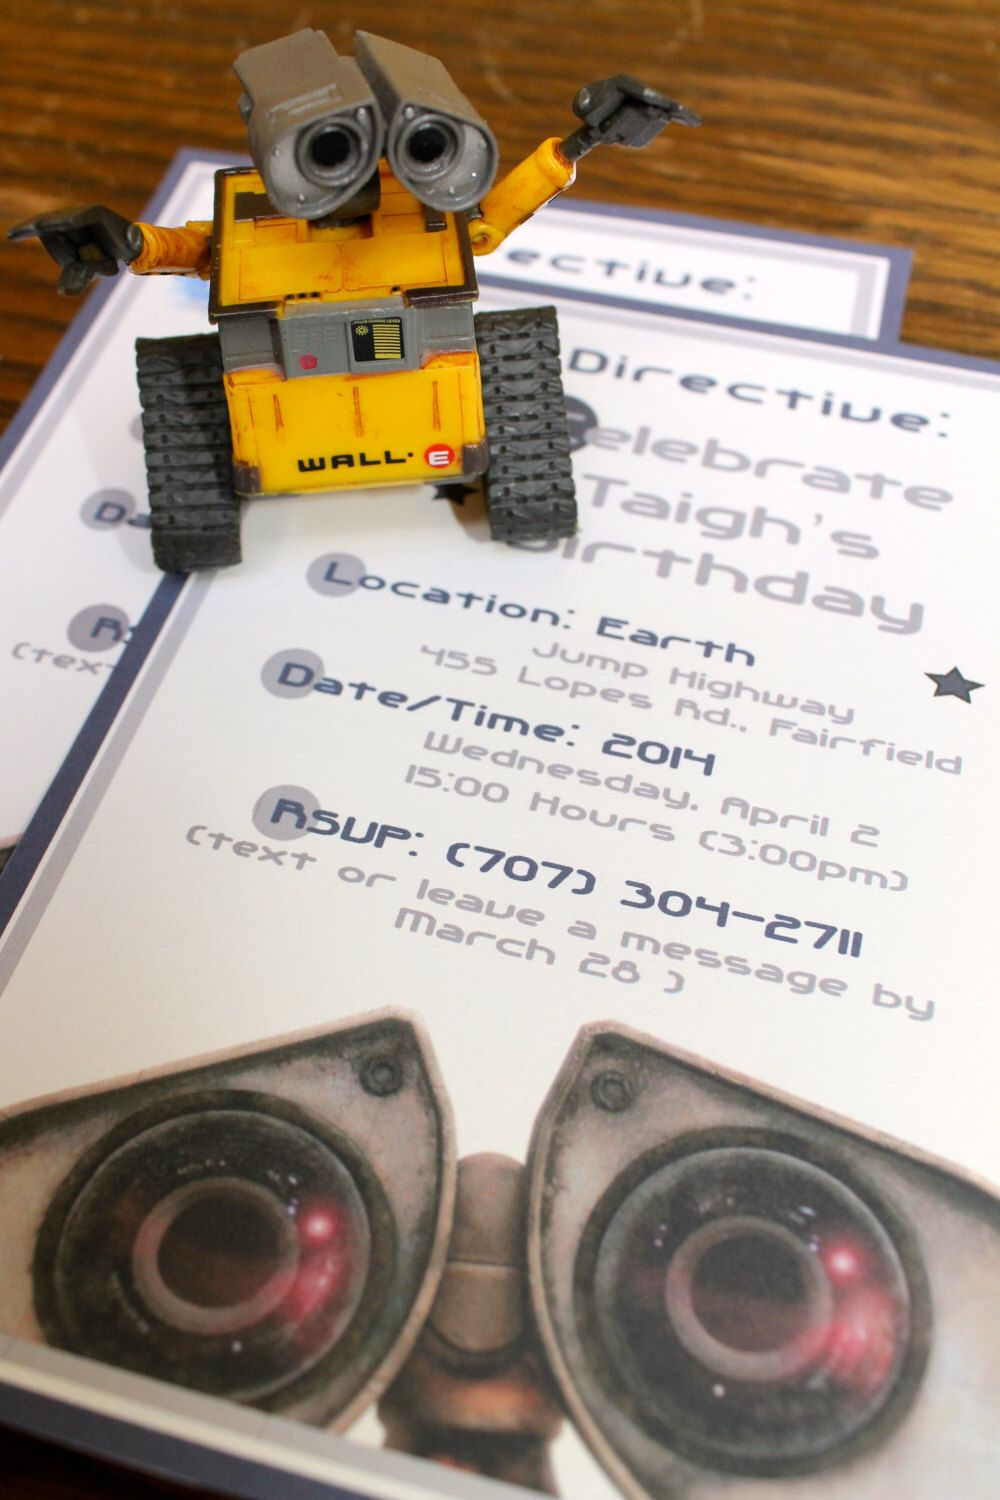 WallE Birthday Party Invitations CustomMade by PaperAndTaigh – E Invites Birthday Party